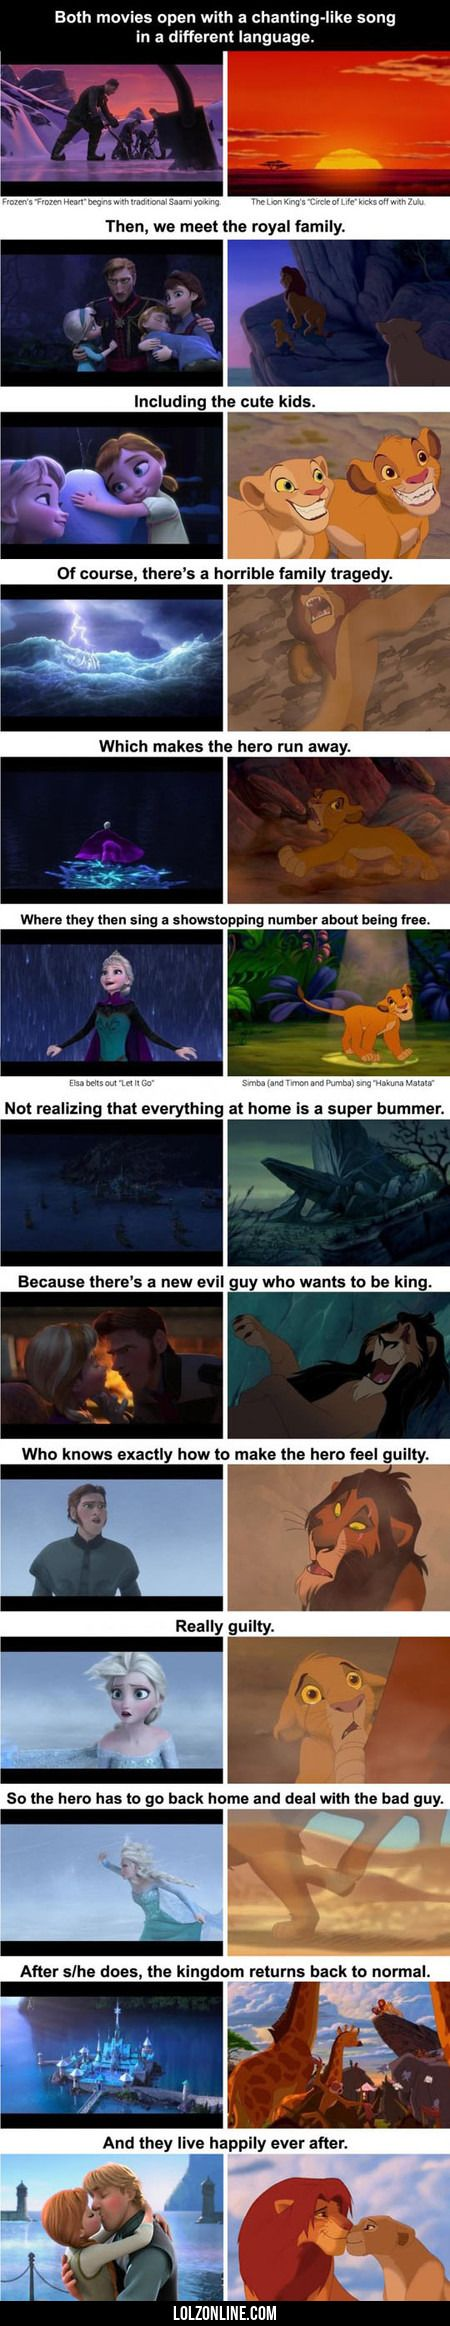 Both Movies Open With A Song#funny #lol #lolzonline